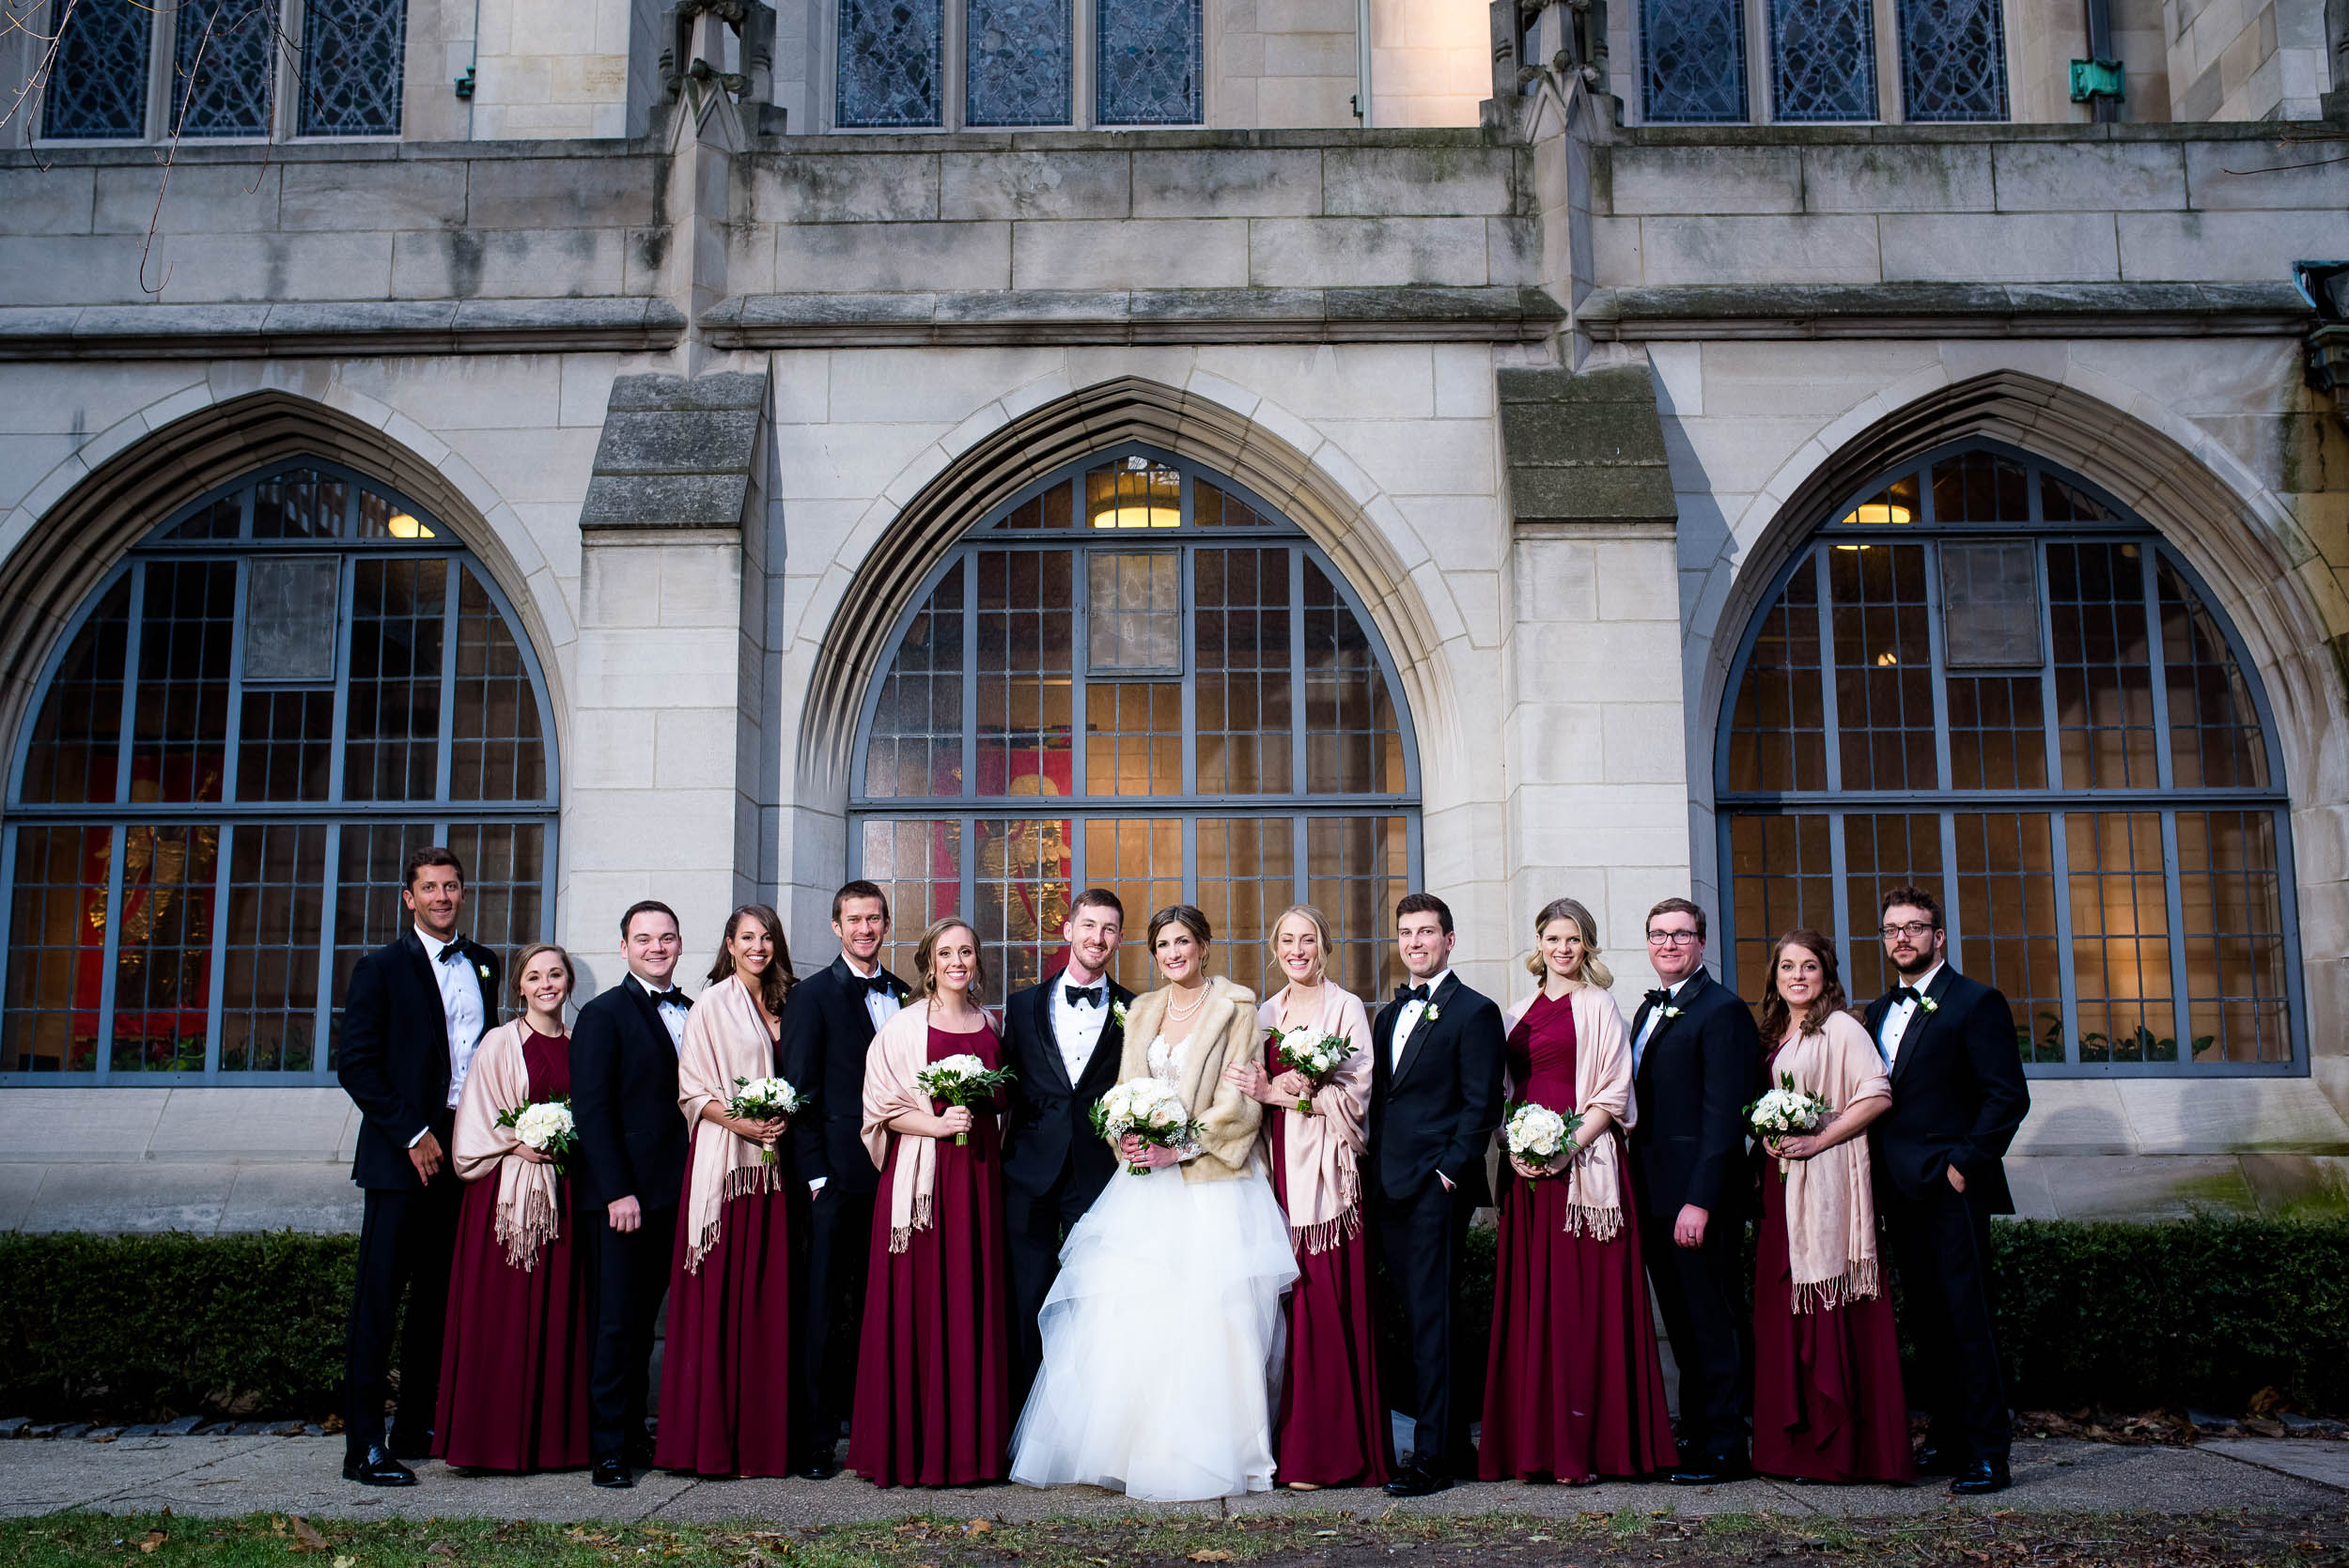 Wedding party courtyard portrait during a Fourth Presbyterian Church wedding.